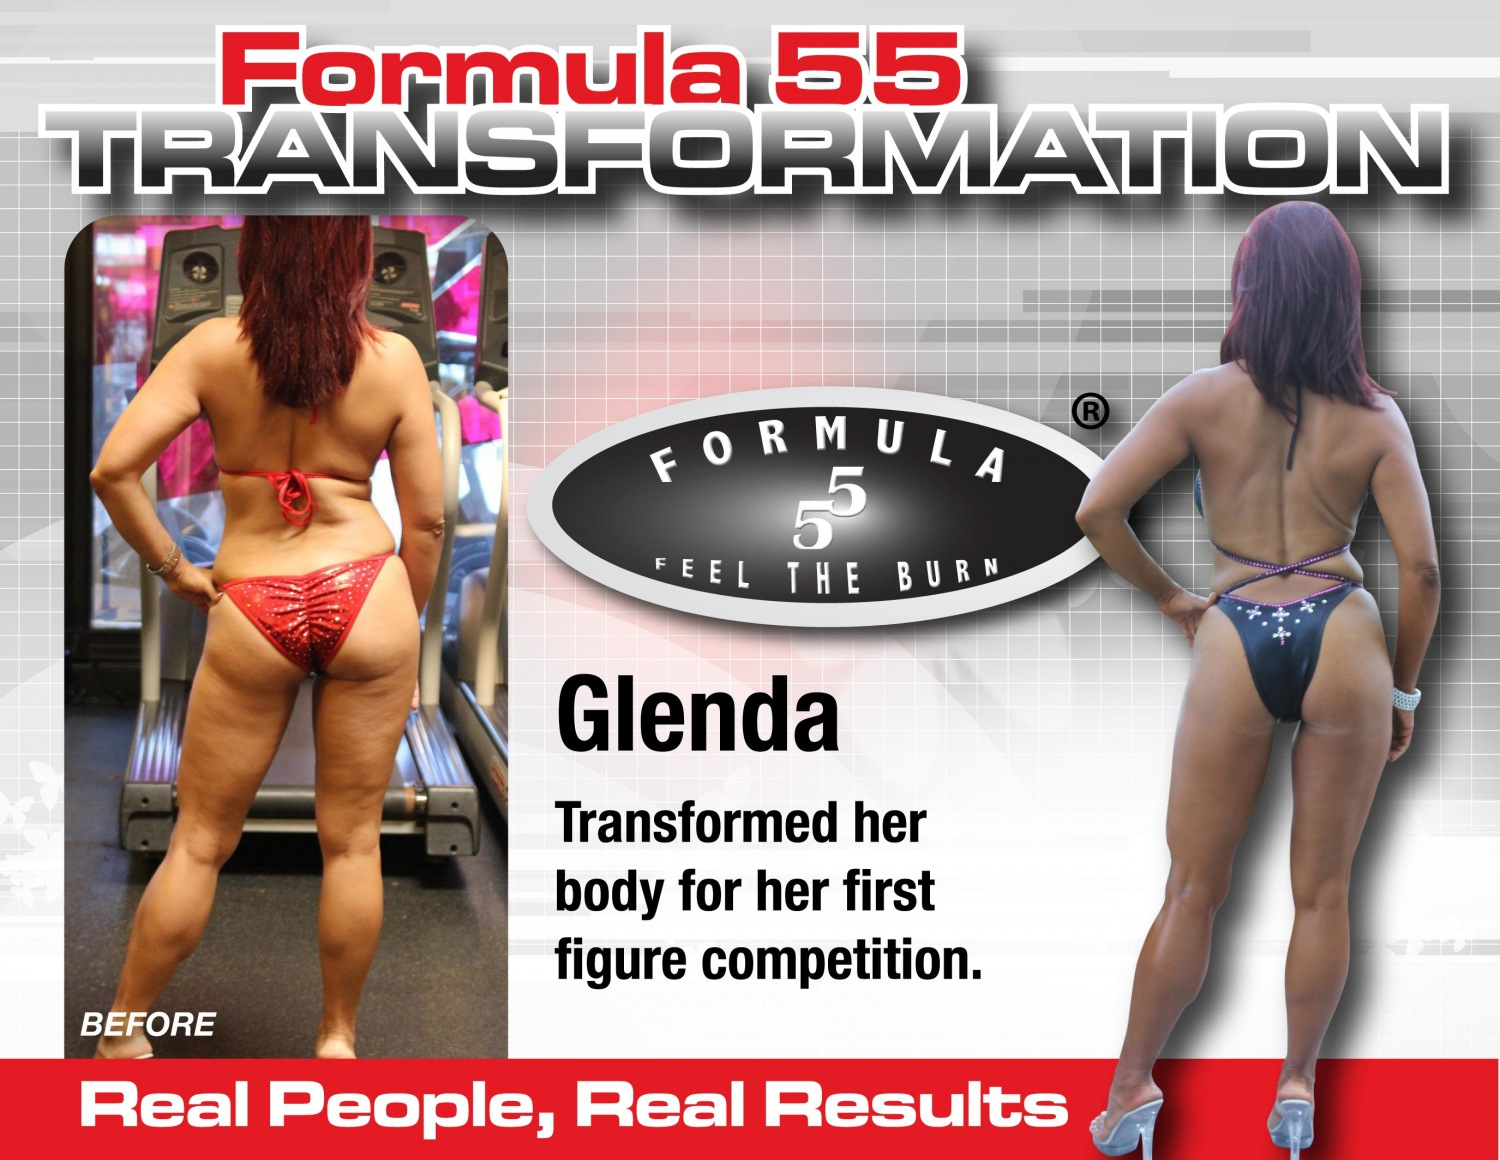 glendafigureflyer.jpg